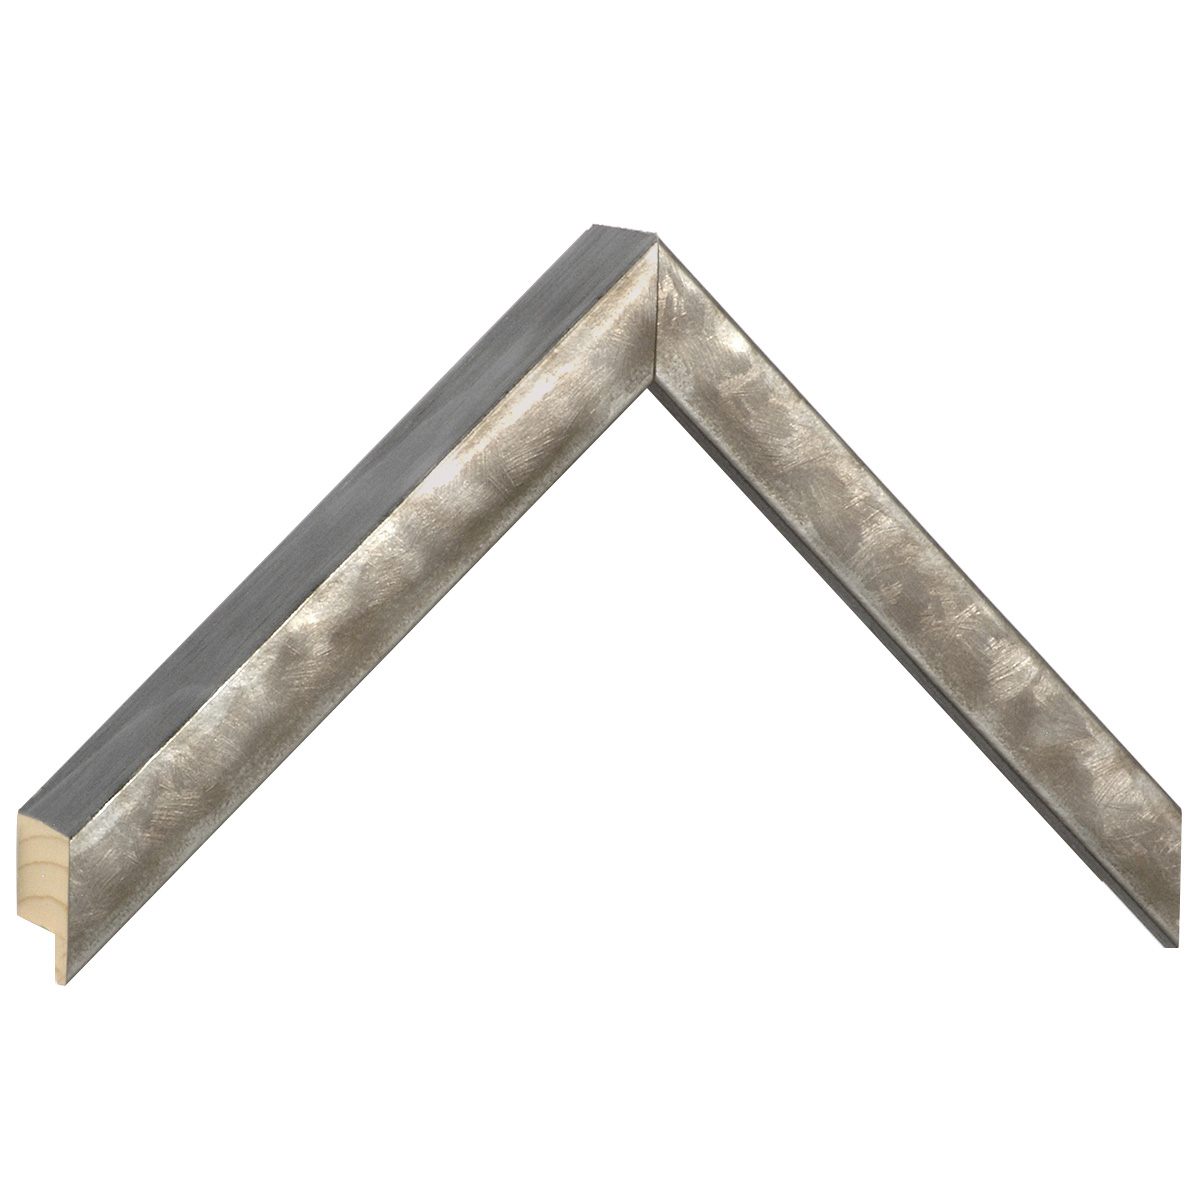 Moulding fir Width 19mm Height 34 - Silver finish